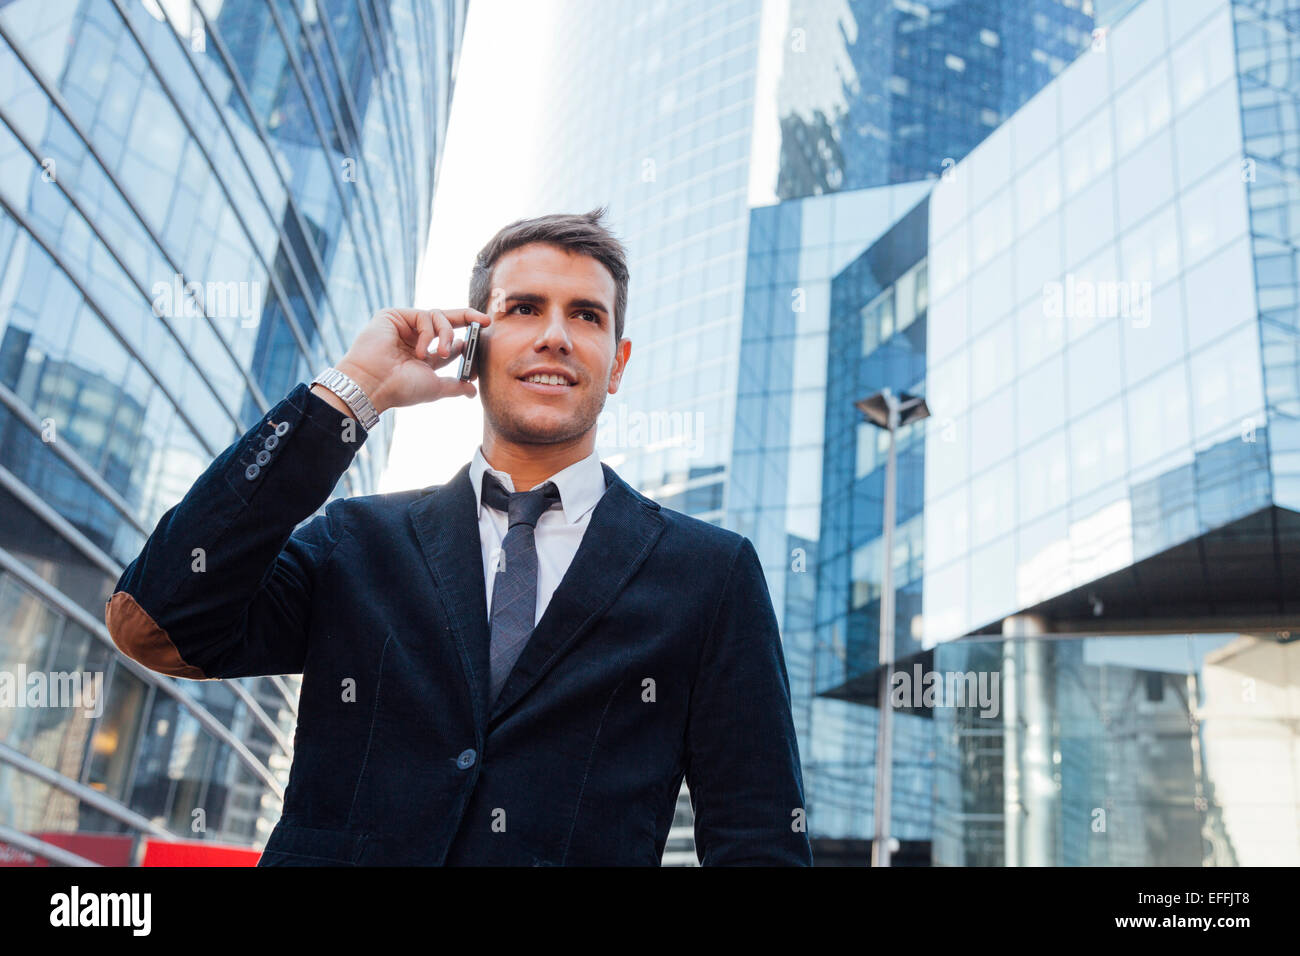 Businessman using a mobile phone Stock Photo